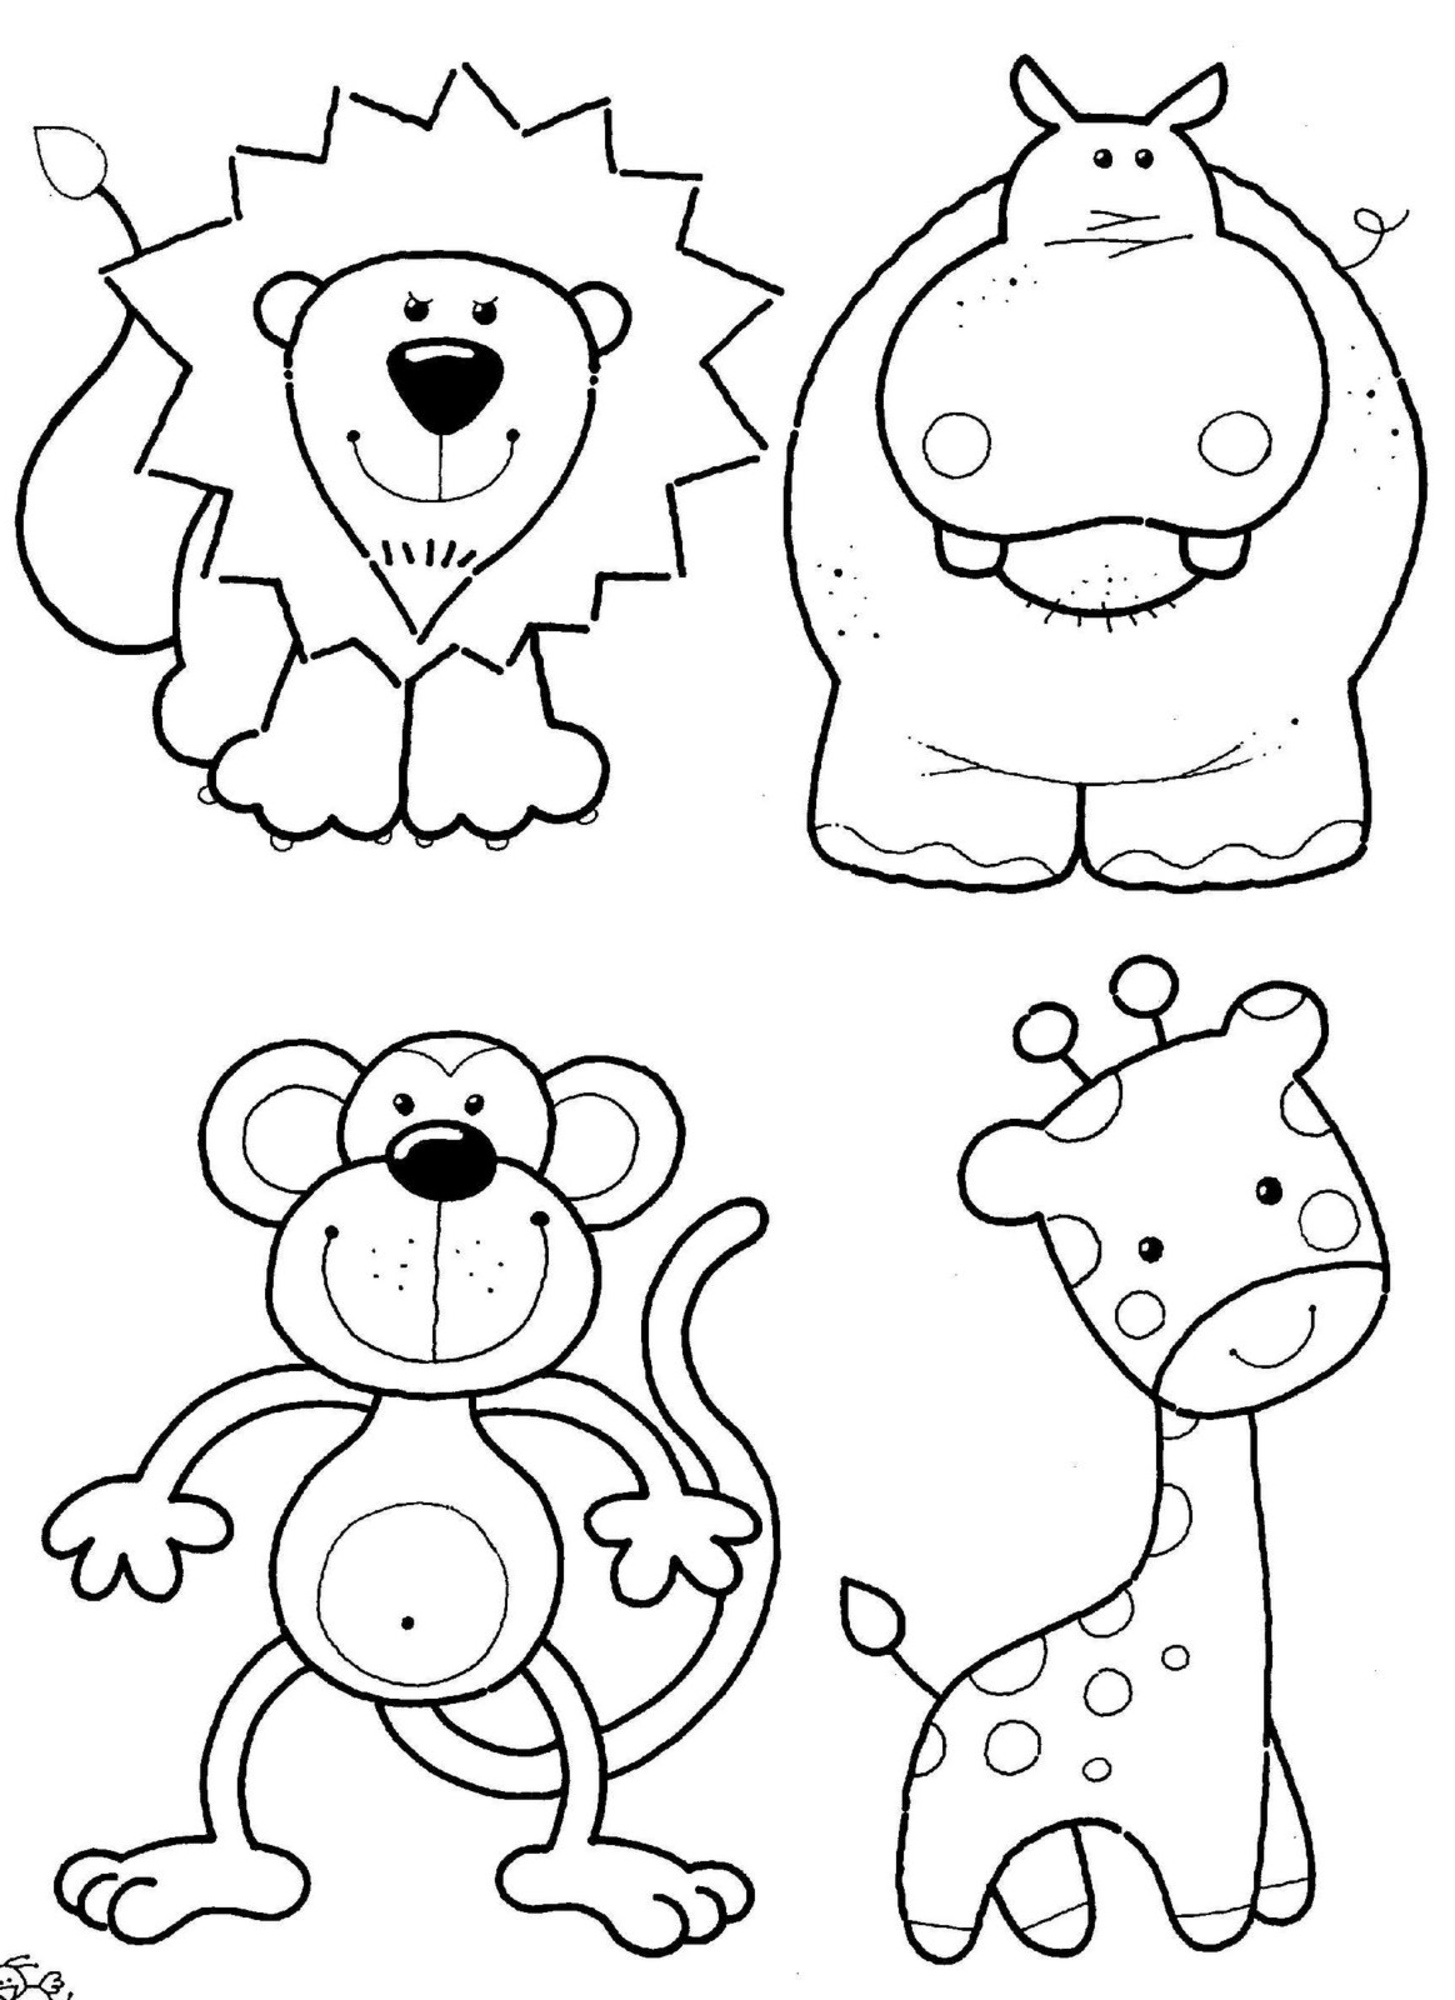 coloring images of animals animal coloring pages for adults best coloring pages for images animals of coloring